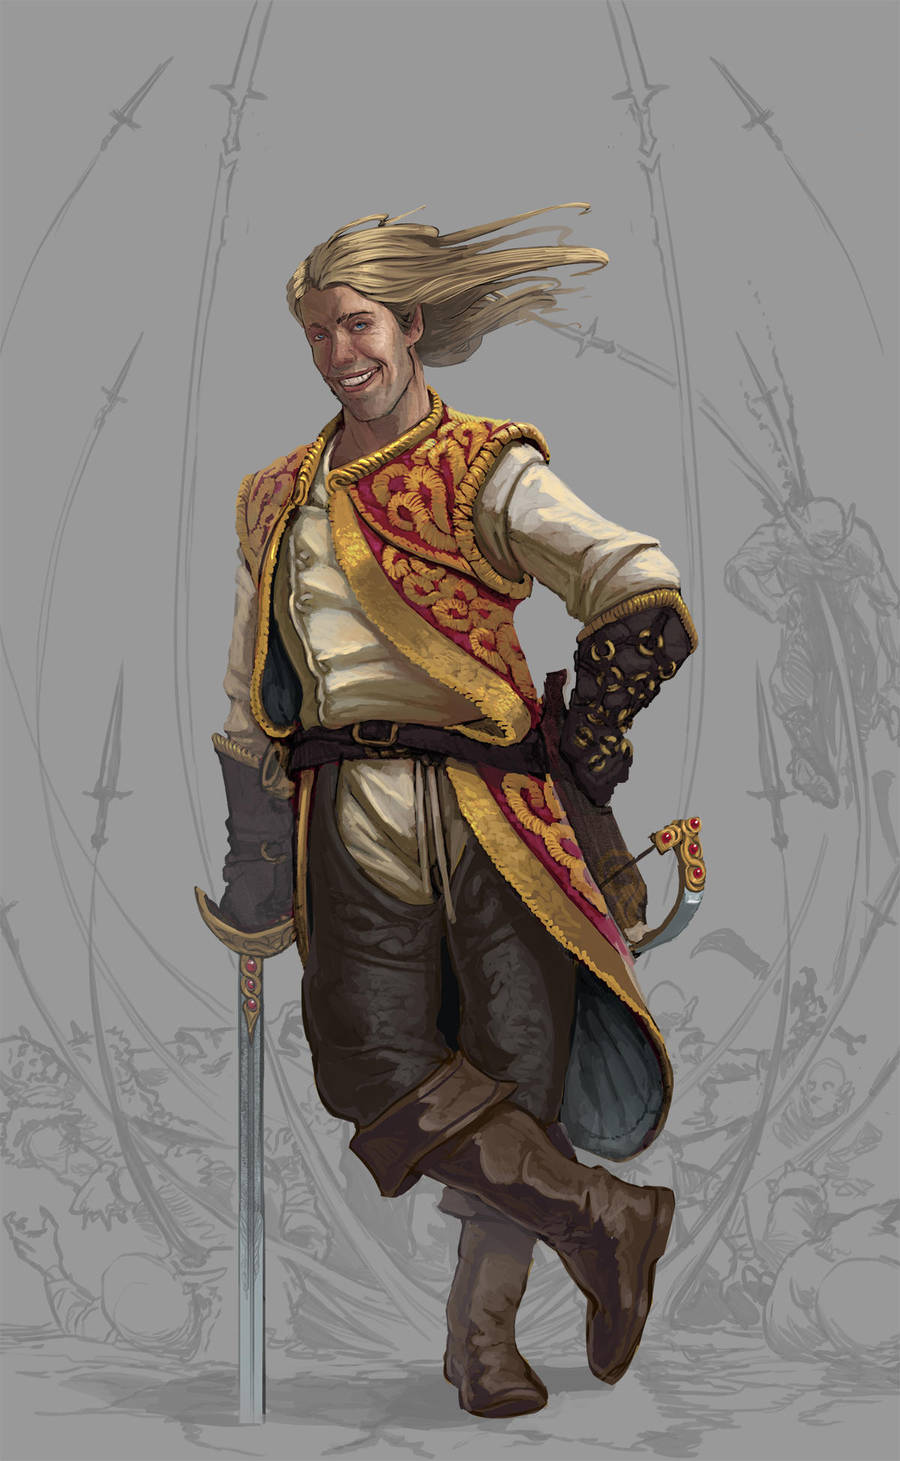 dnd_voltaire_by_stephen_0akley_dc534tc-fullview.jpg